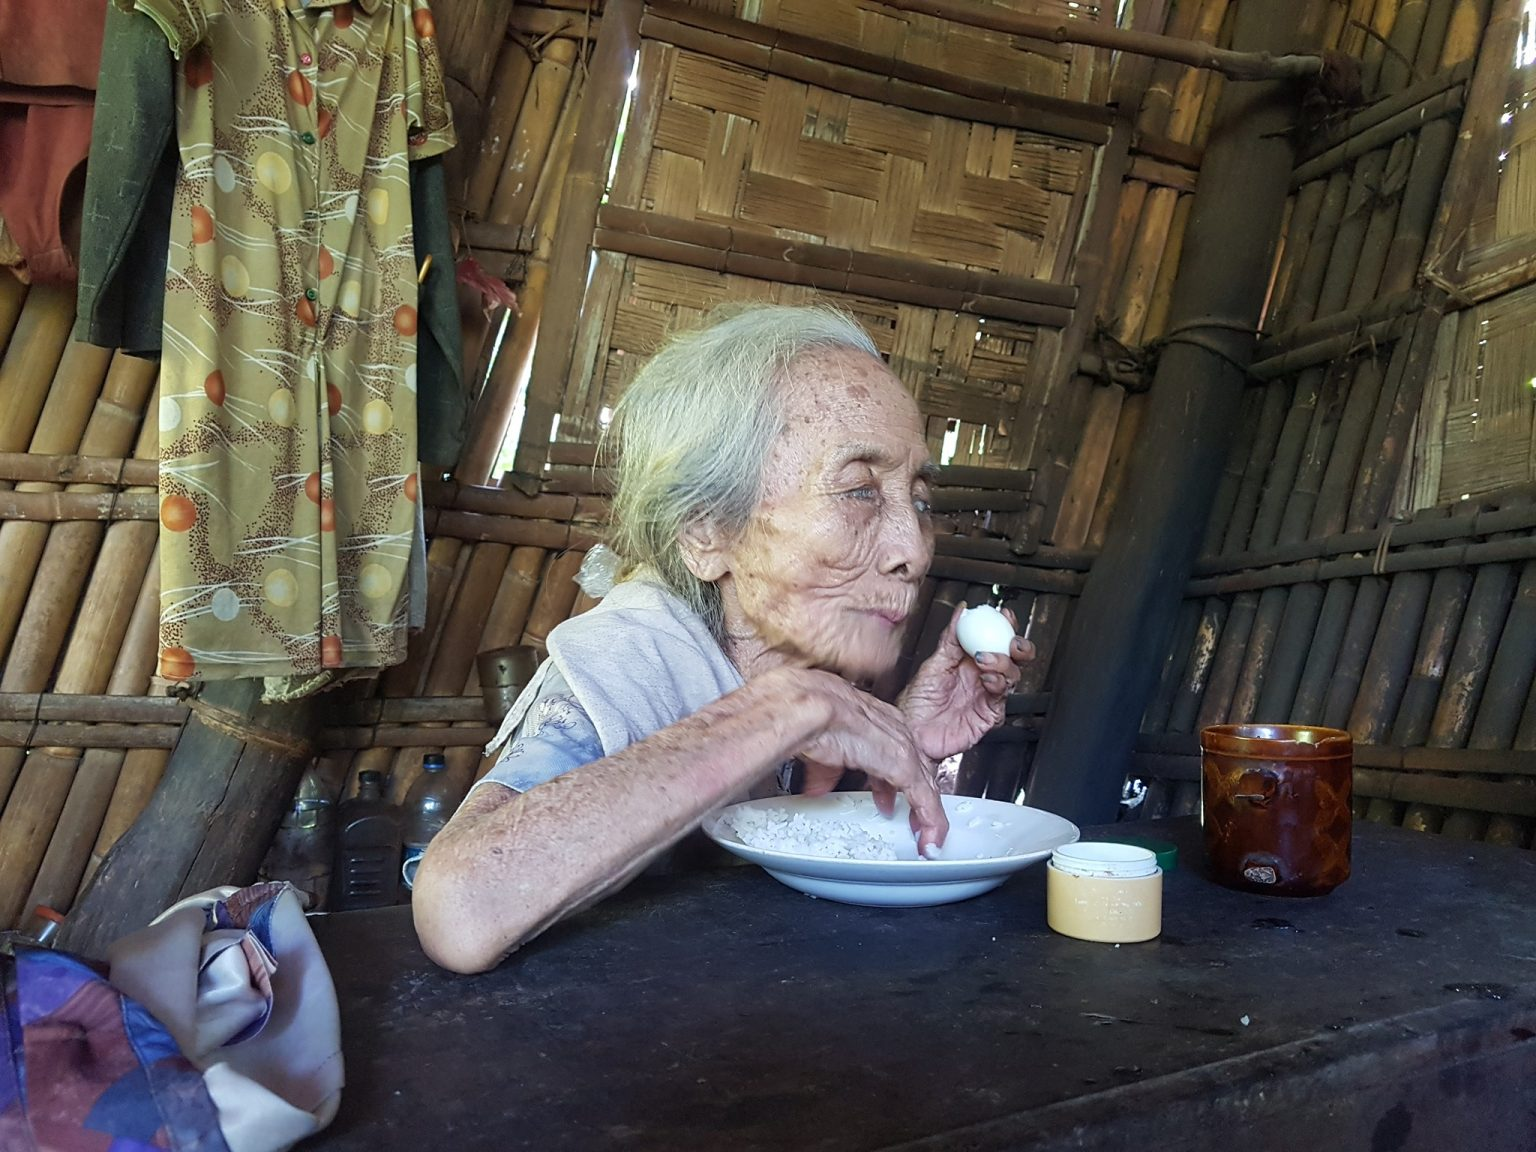 Police Help 98 Year Old Woman & Help Build Her New Home